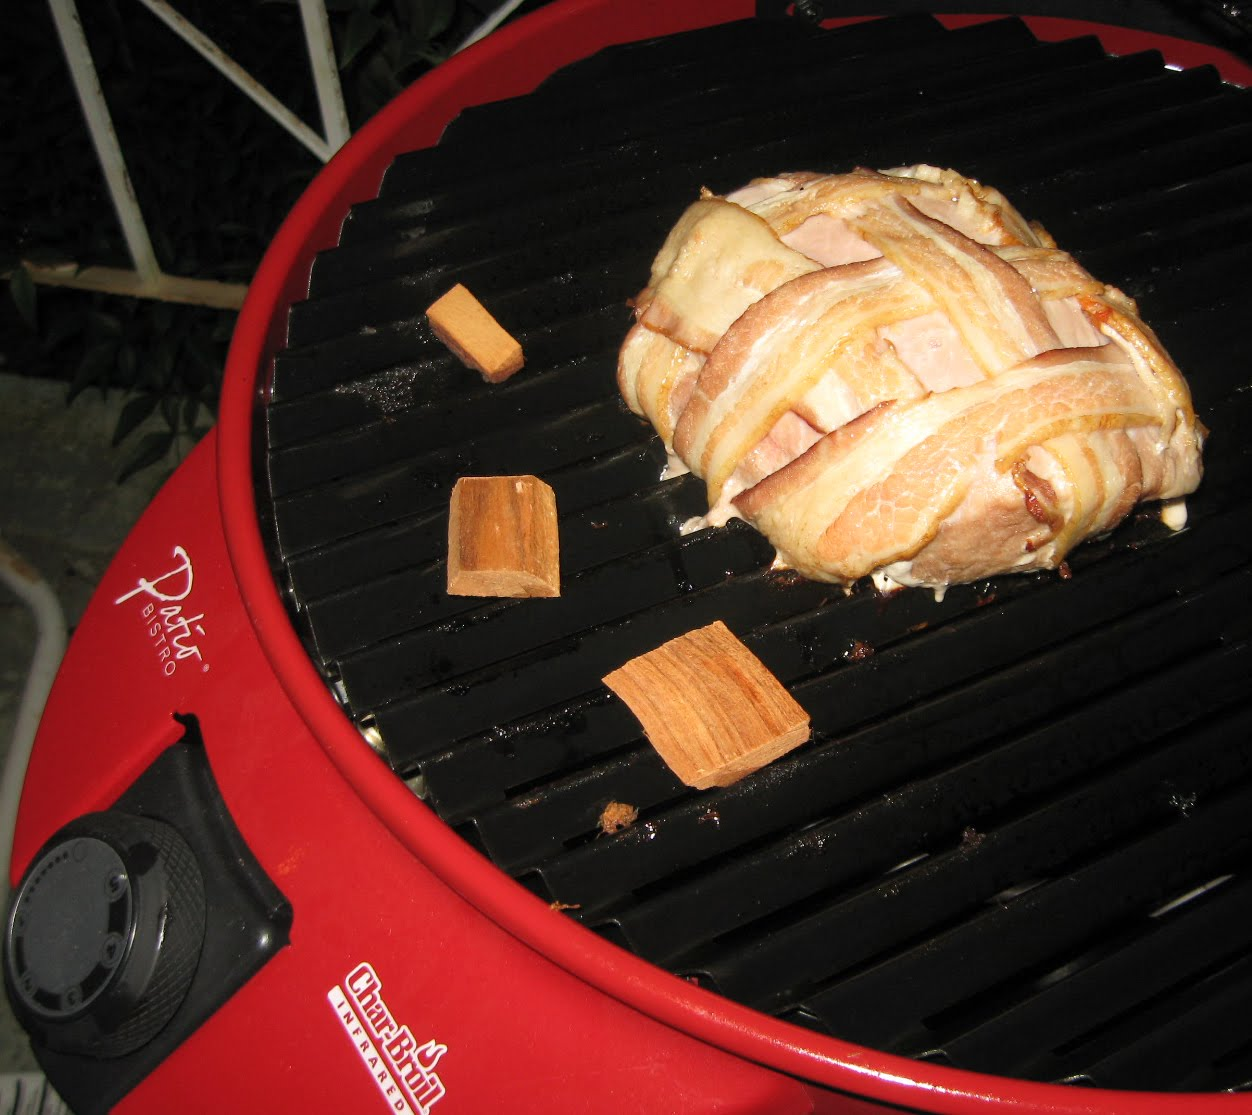 I Did A Bacon Weave On The Pork Loin And Then Heated Up The Char Broil  Bistro. Then I Had A Brain Fart And Unplugged It For Some Reason.